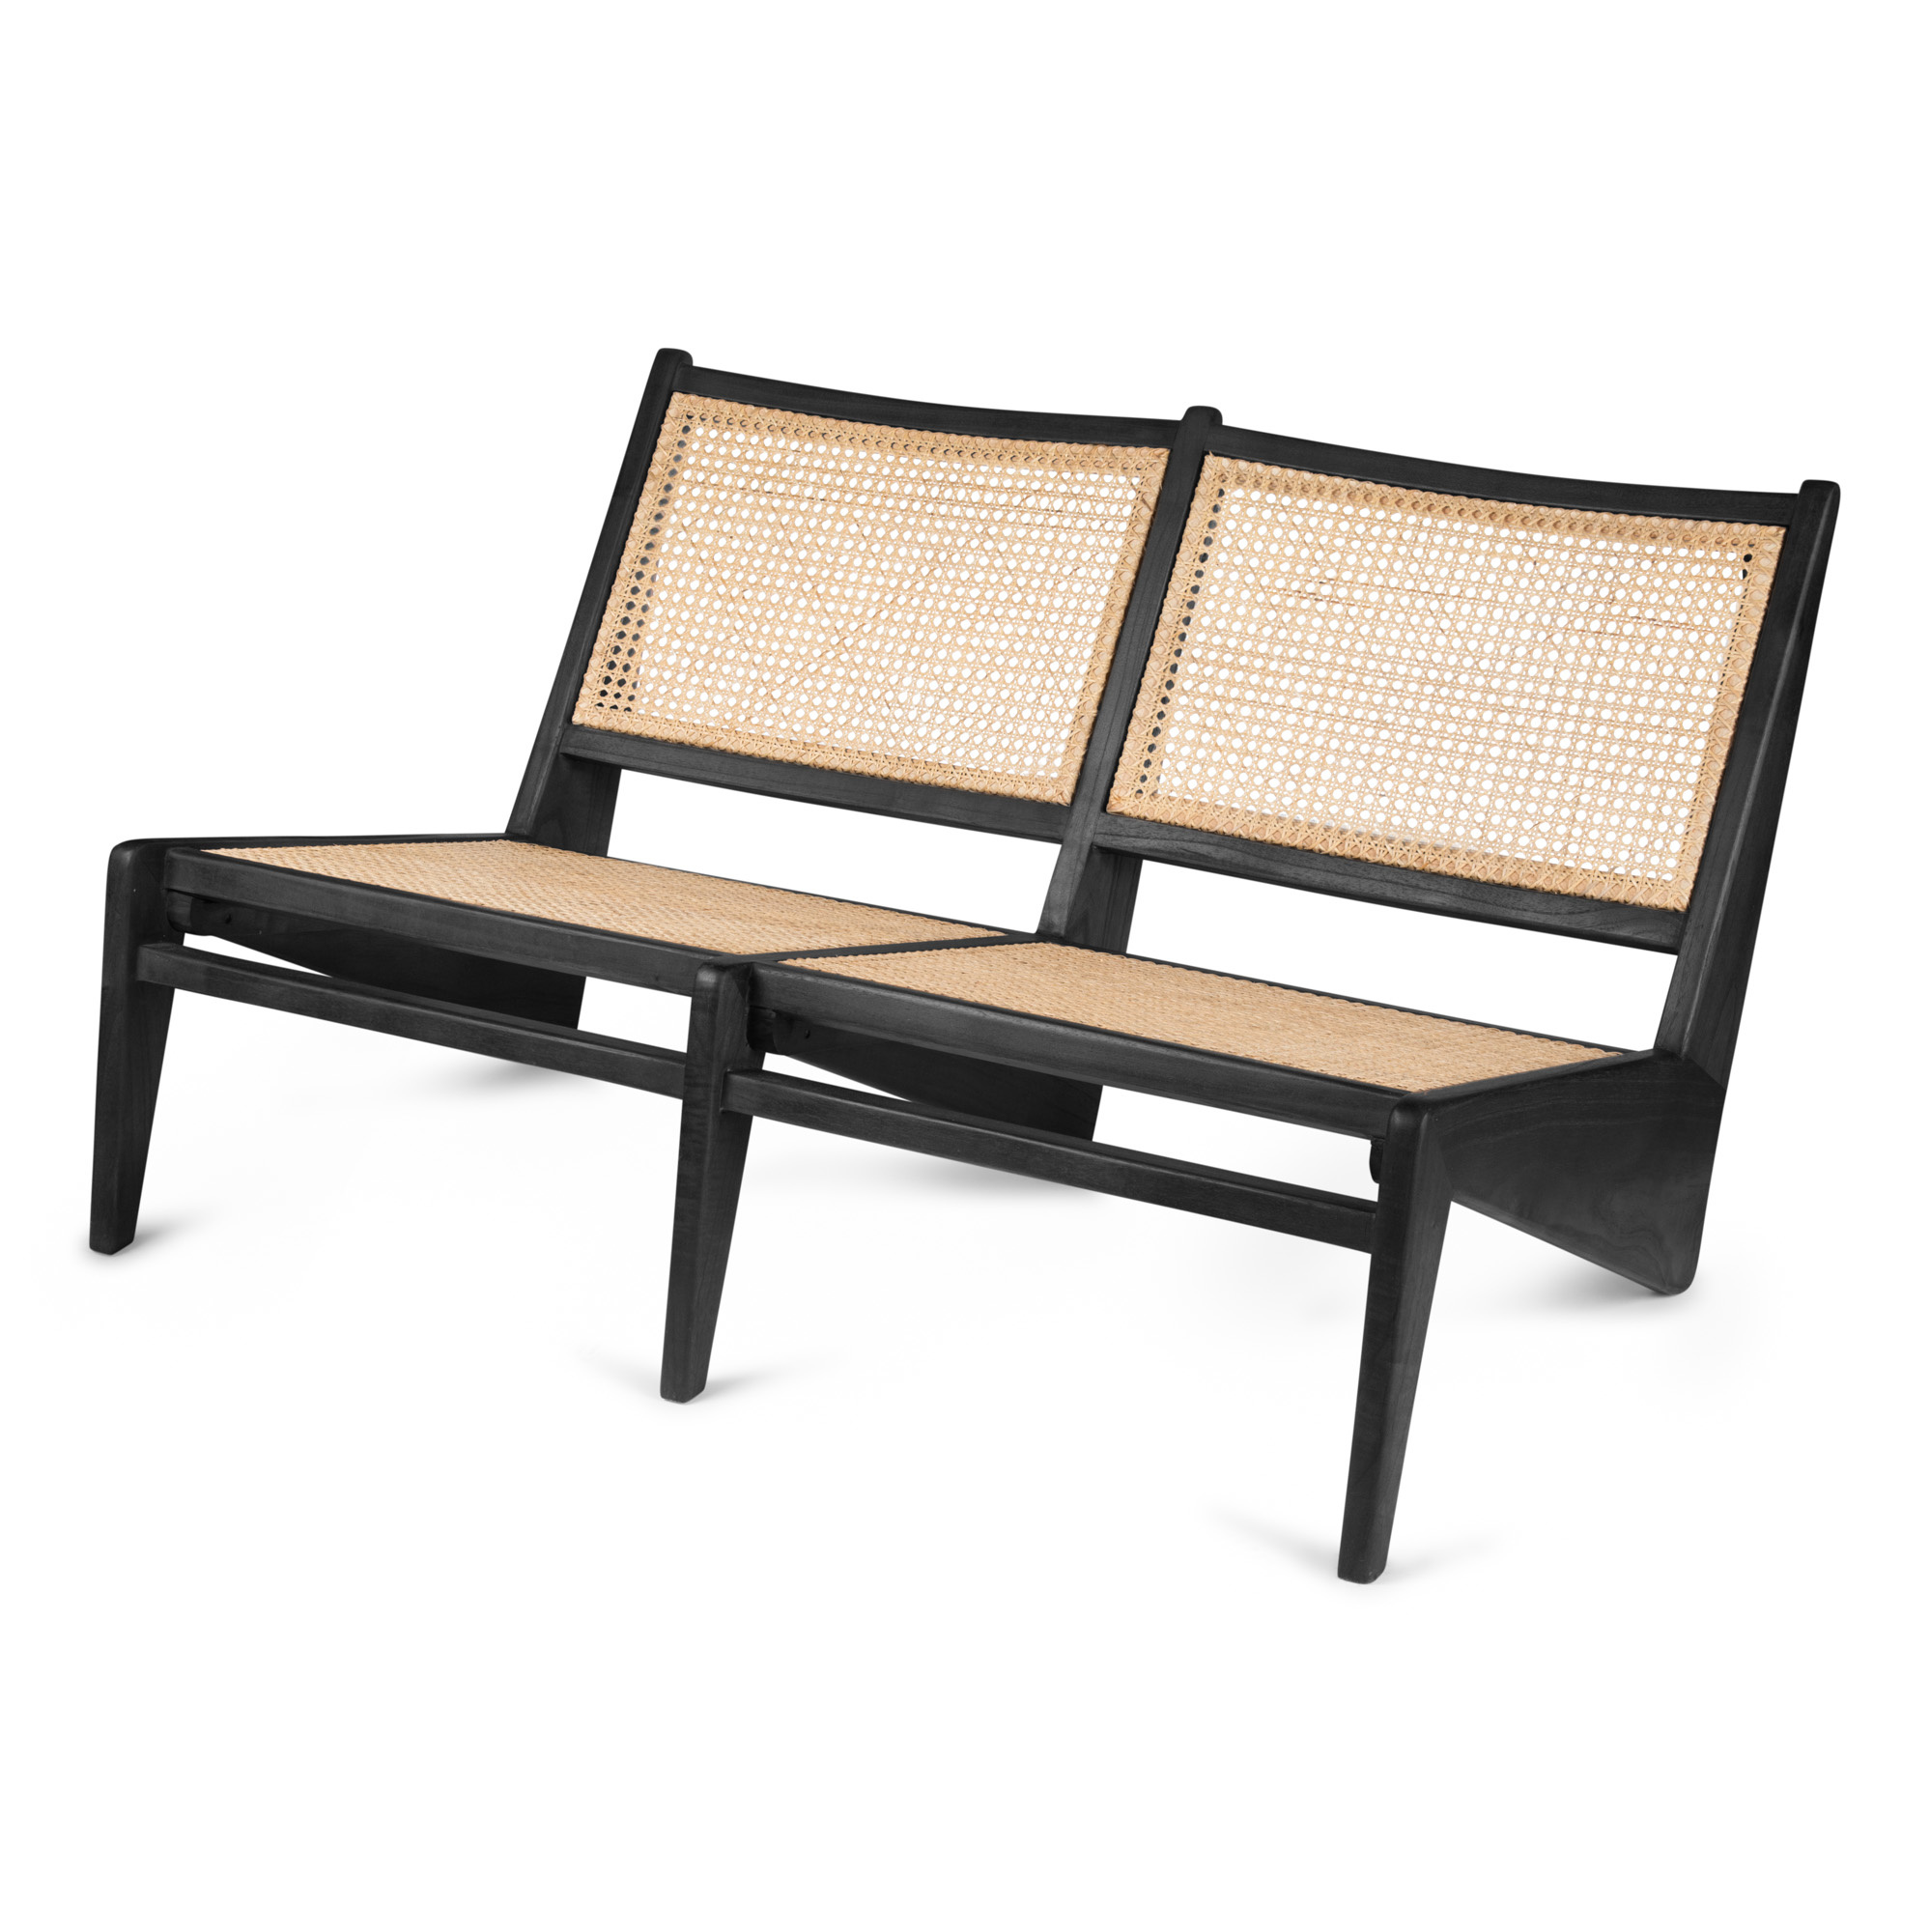 Kangaroo Chair Bench 2 - Charcoal Black-1